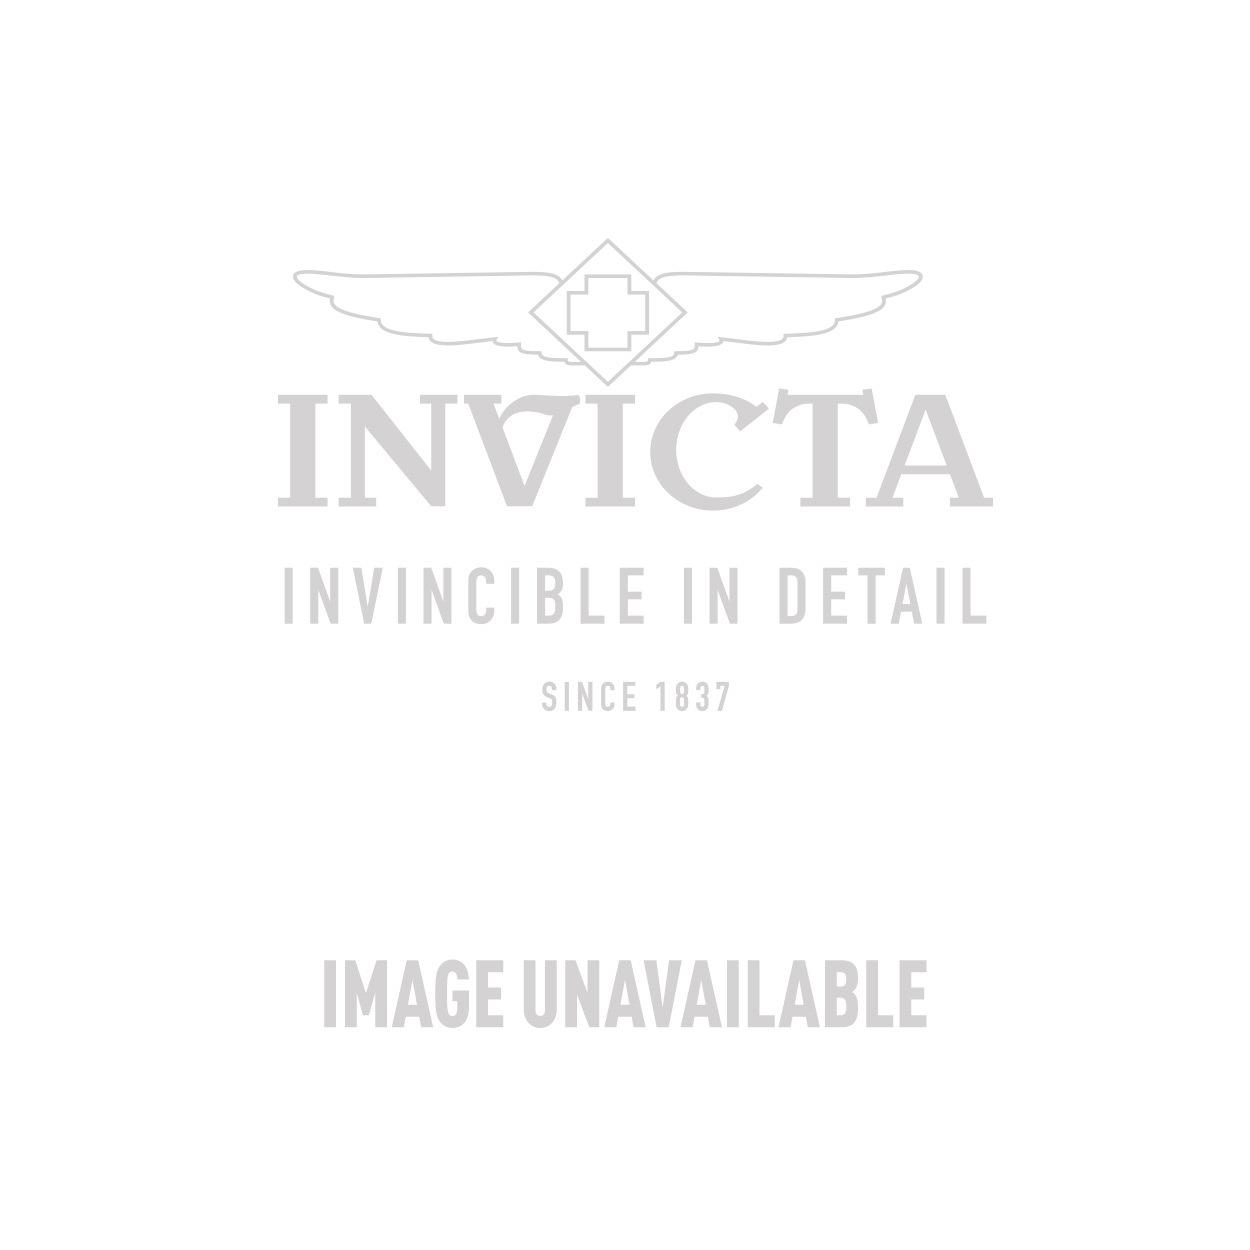 Invicta Angel Swiss Movement Quartz Watch - Stainless Steel case Stainless Steel band - Model 90288